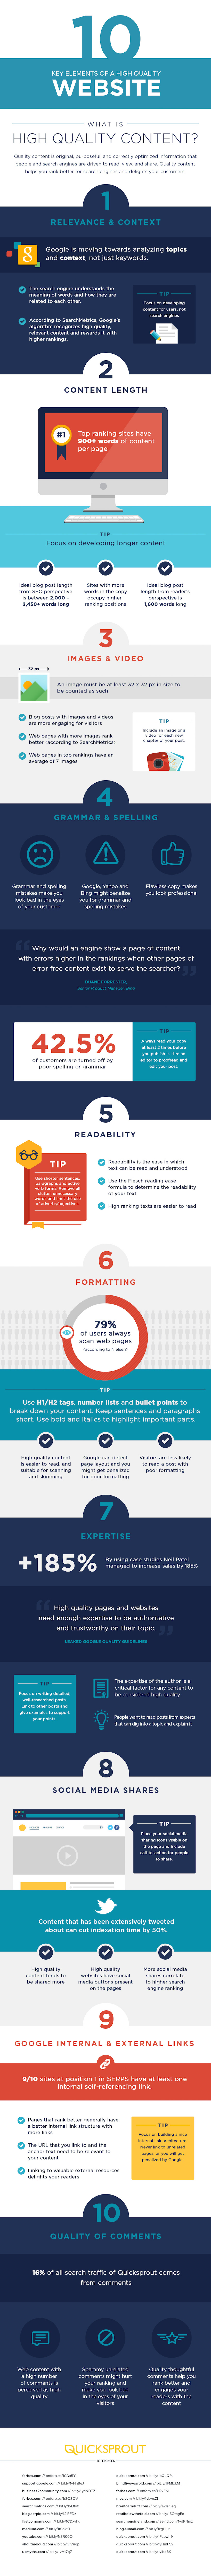 high quality content website infographic